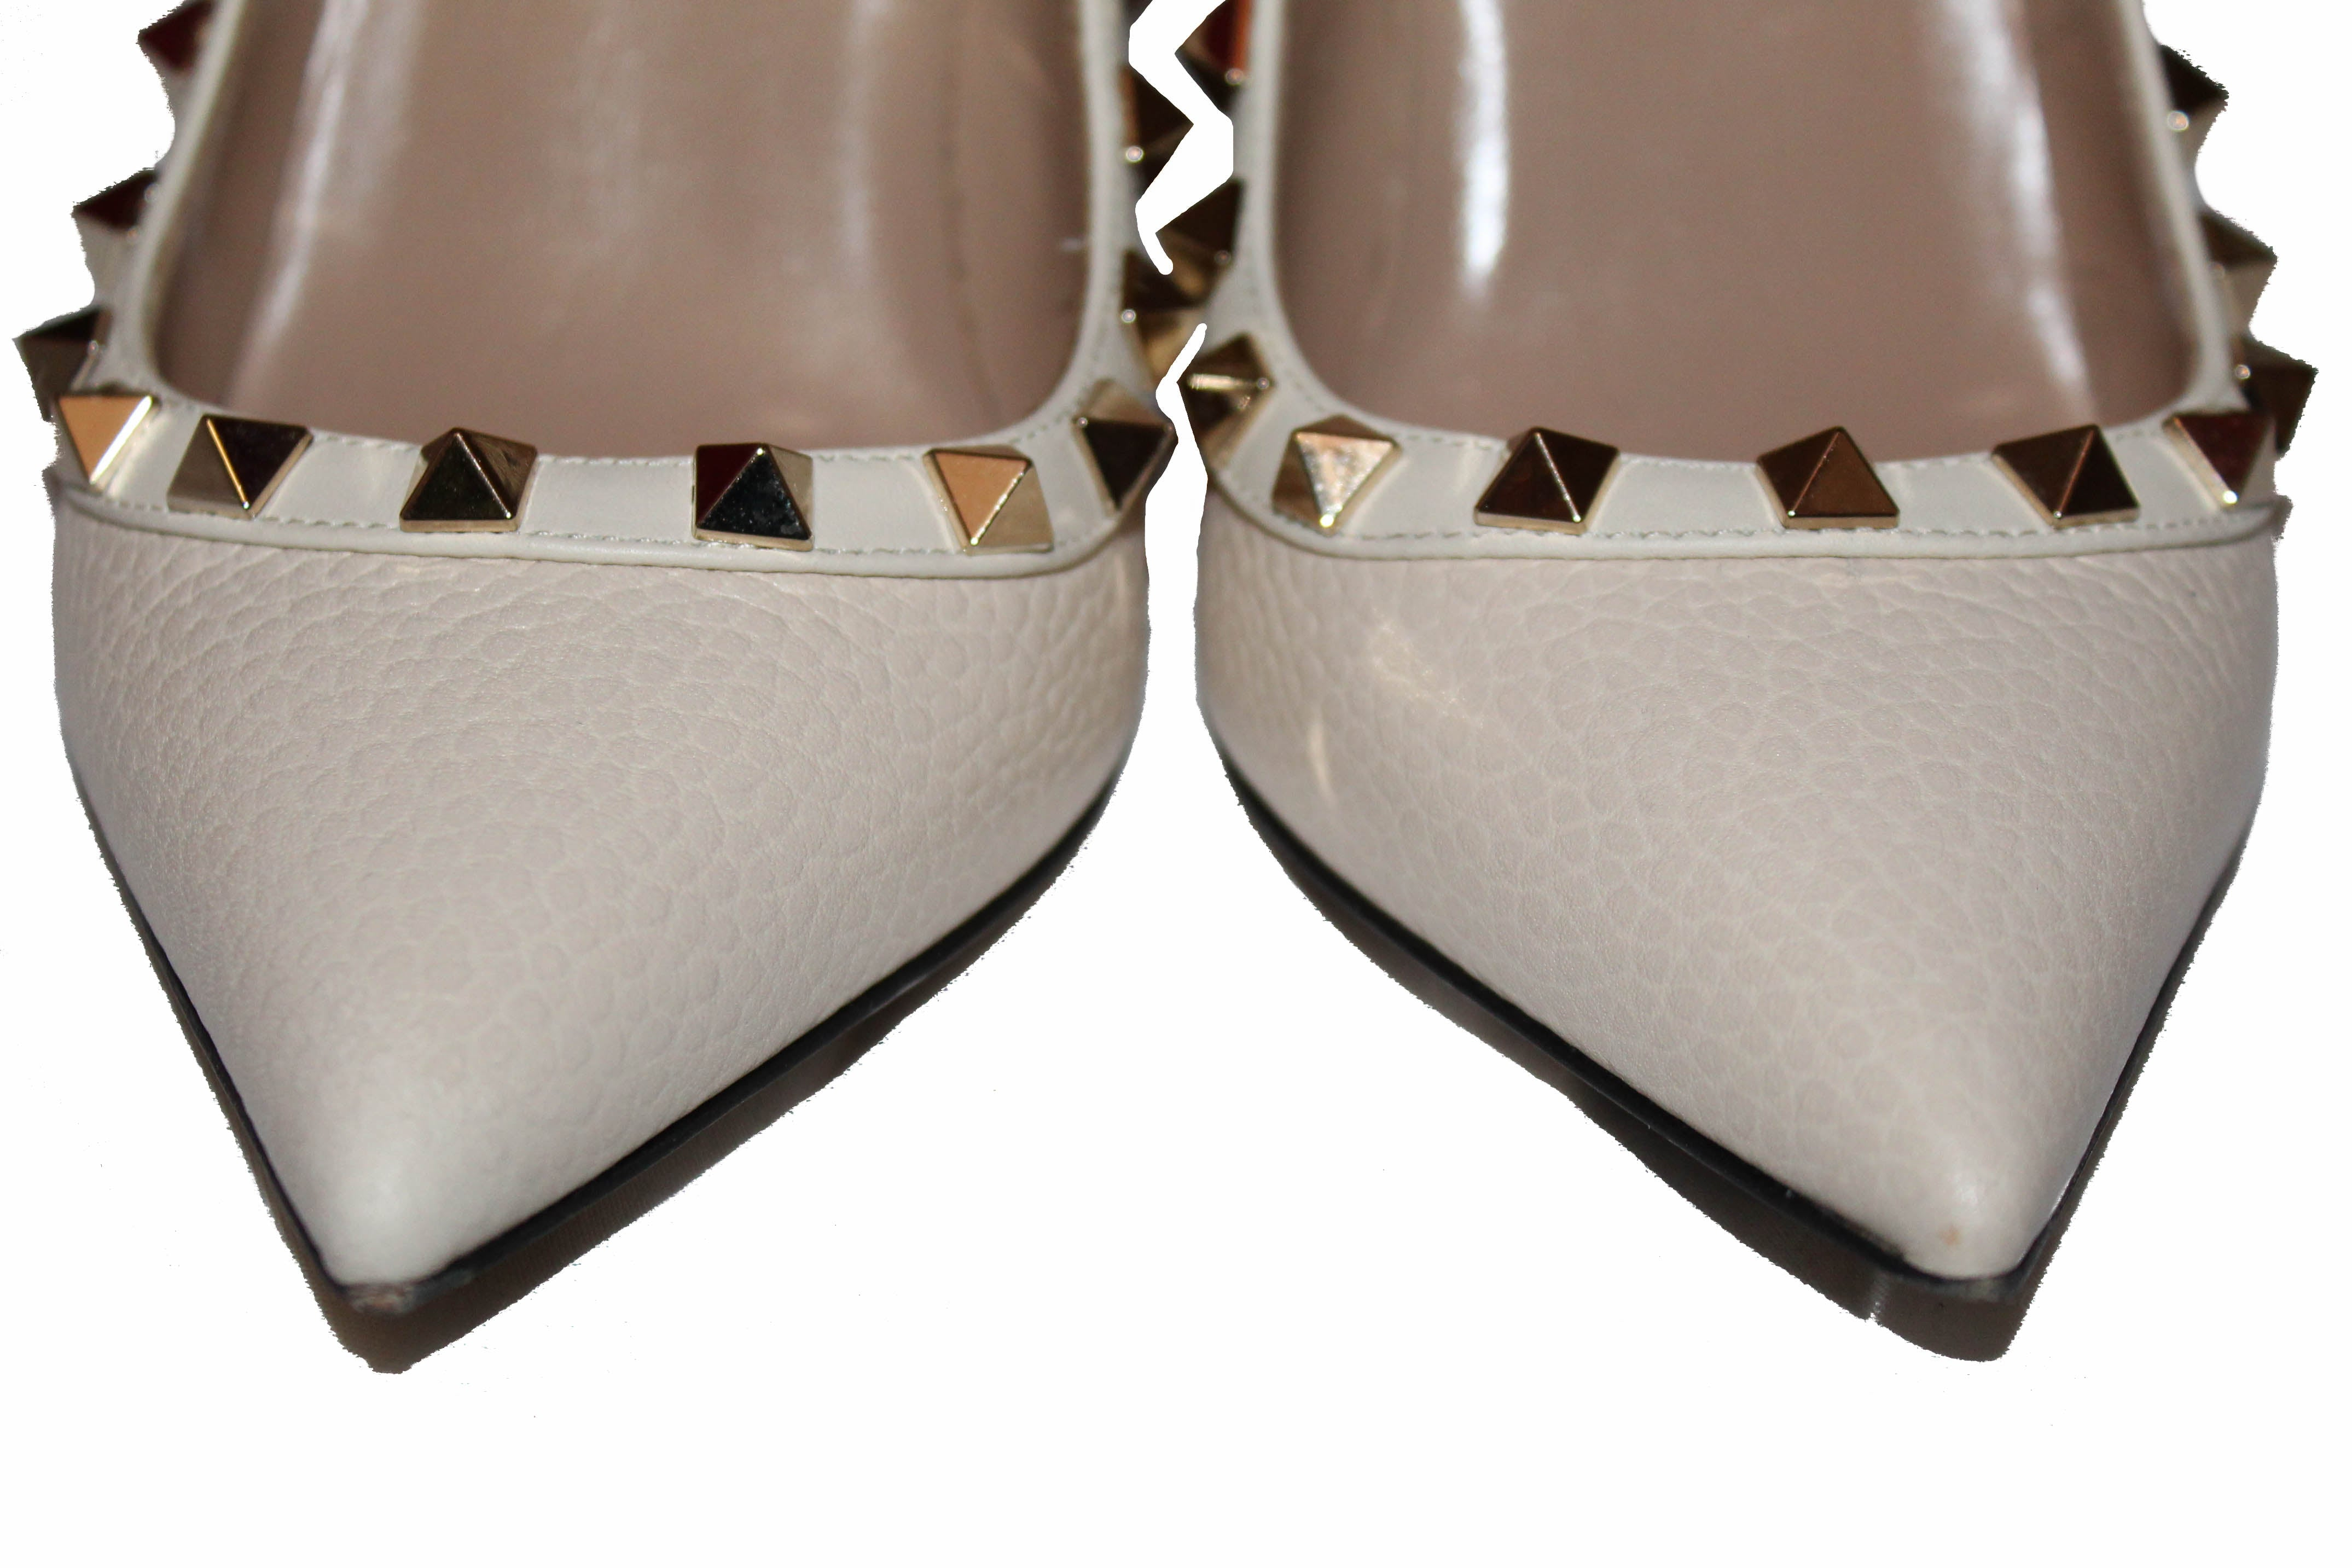 Authentic Valentino Garavani Ivory Pebbled Leather Pumps Size 35